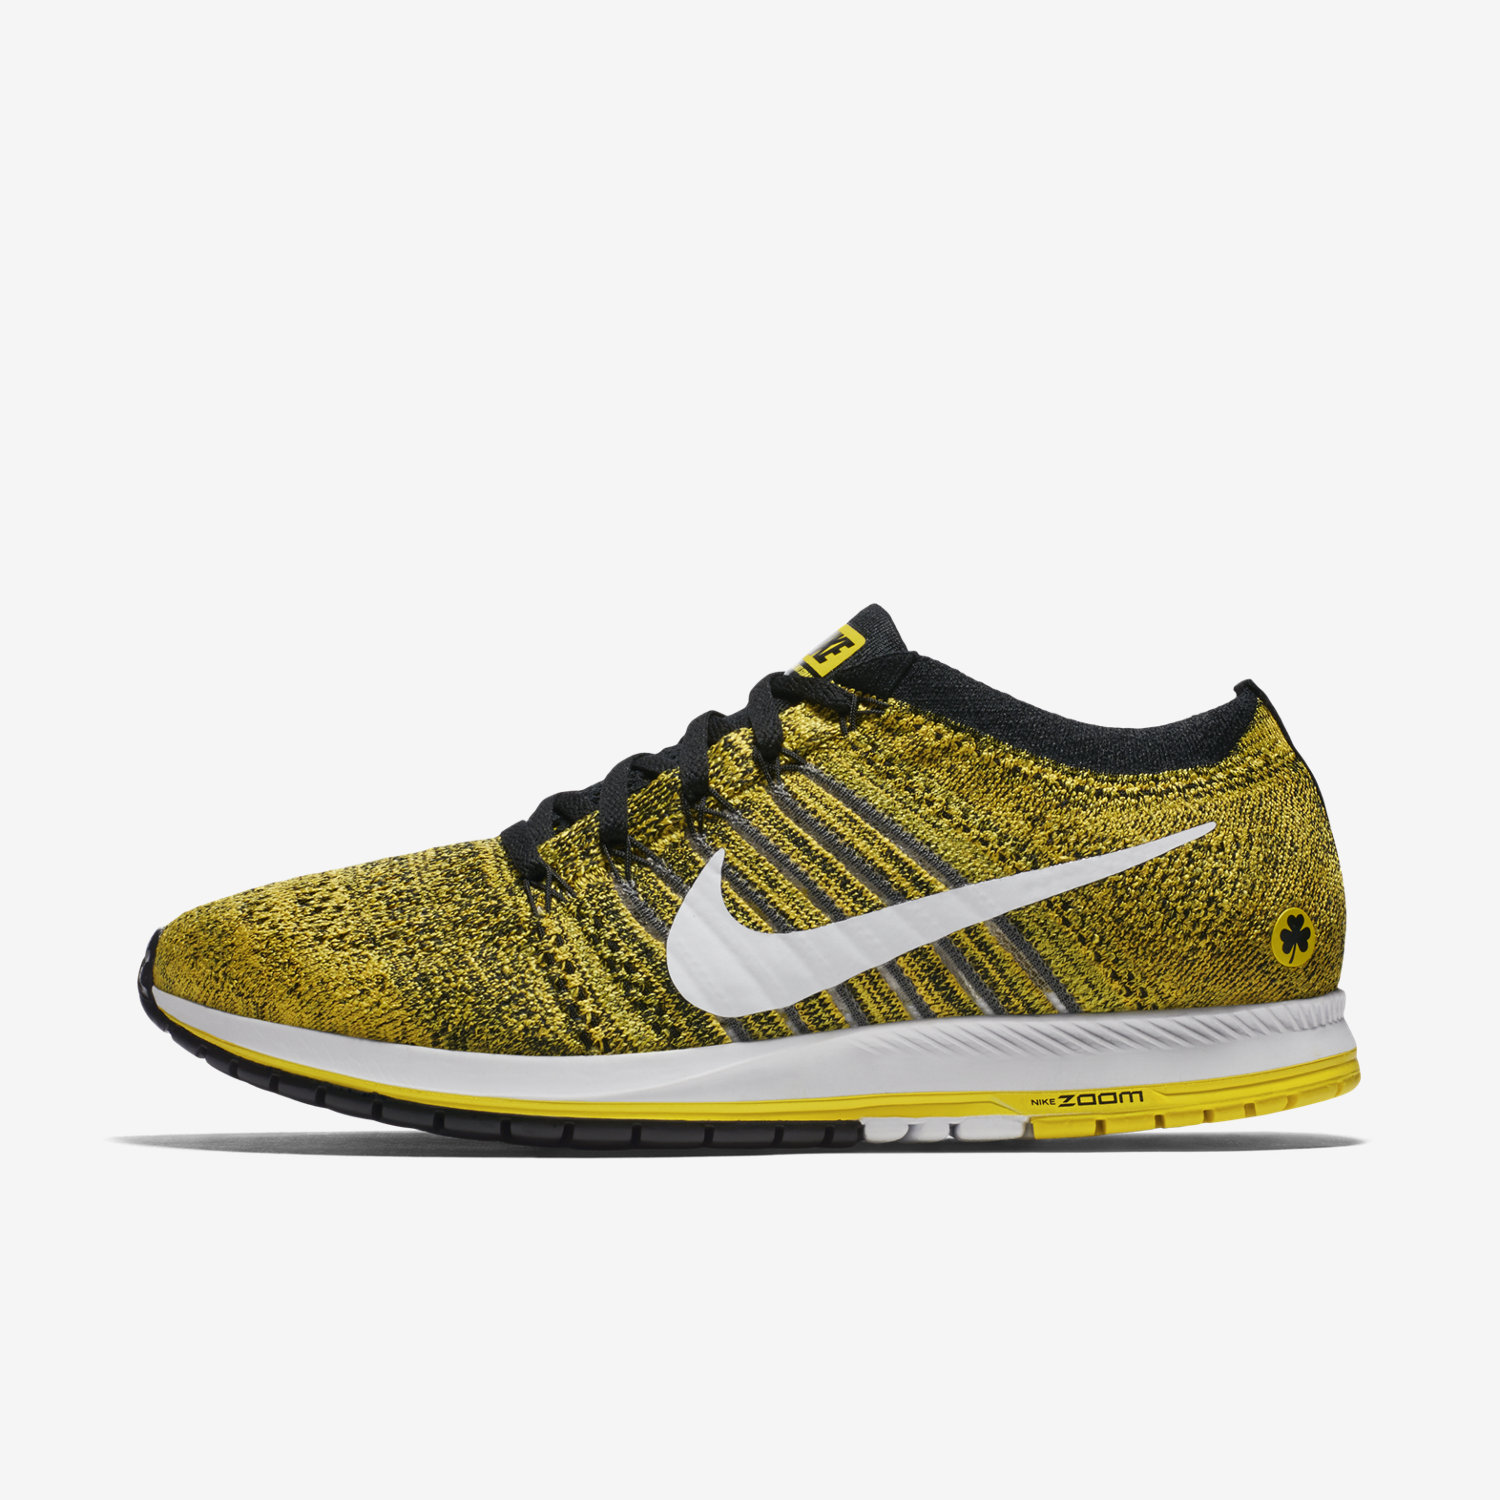 Nike Flyknit Streak BOSTON LTD Edition Unisex Running Shoes